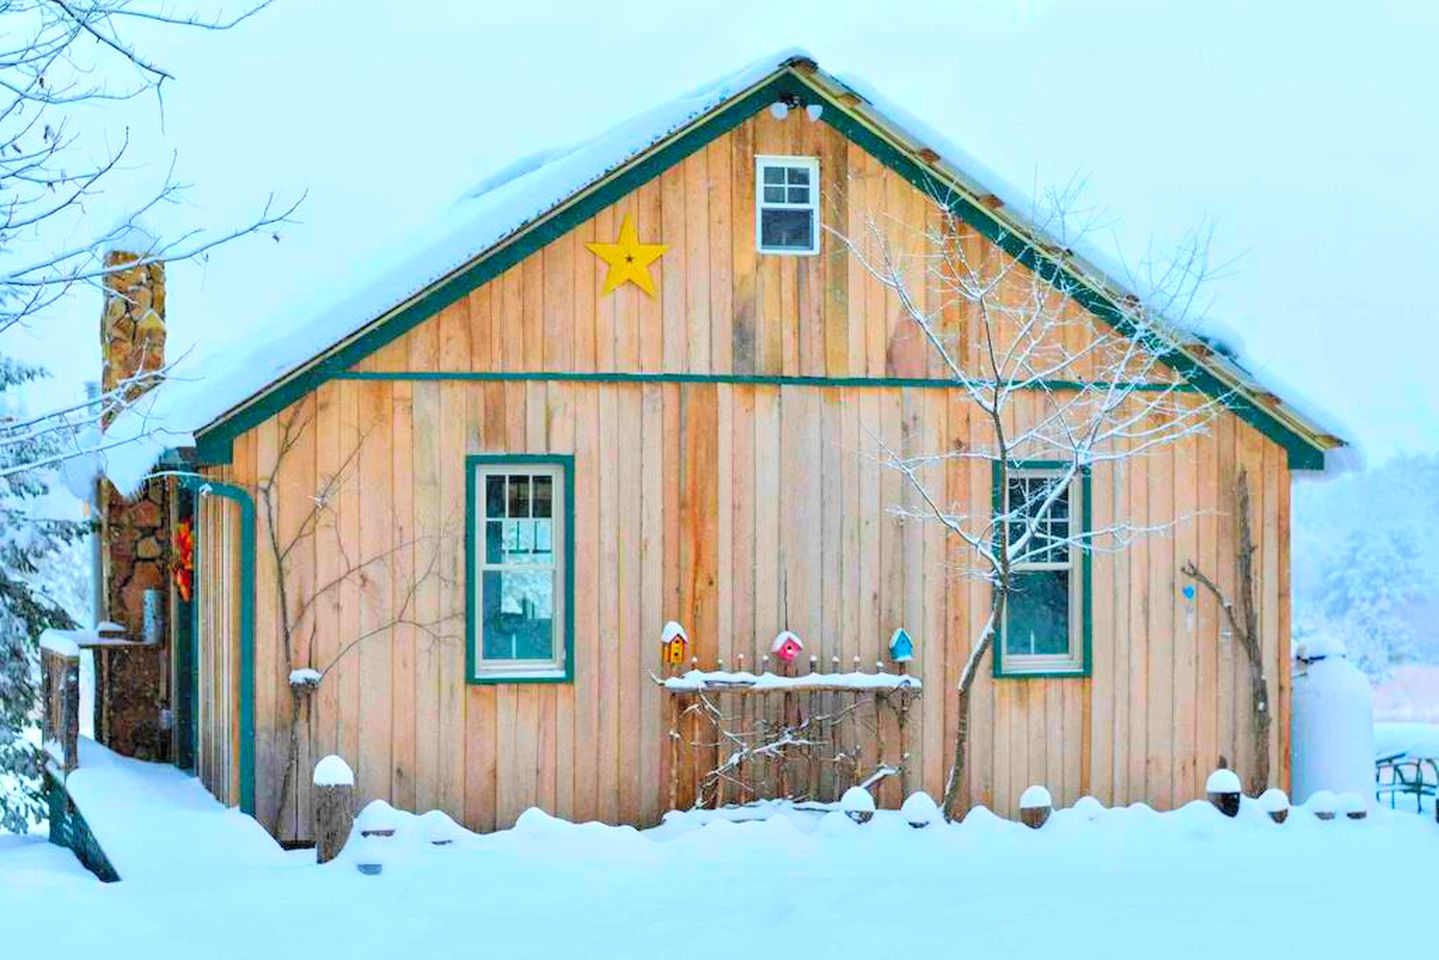 Pennsylvania cabin rental, covered in snow, in the town of Frenchville.